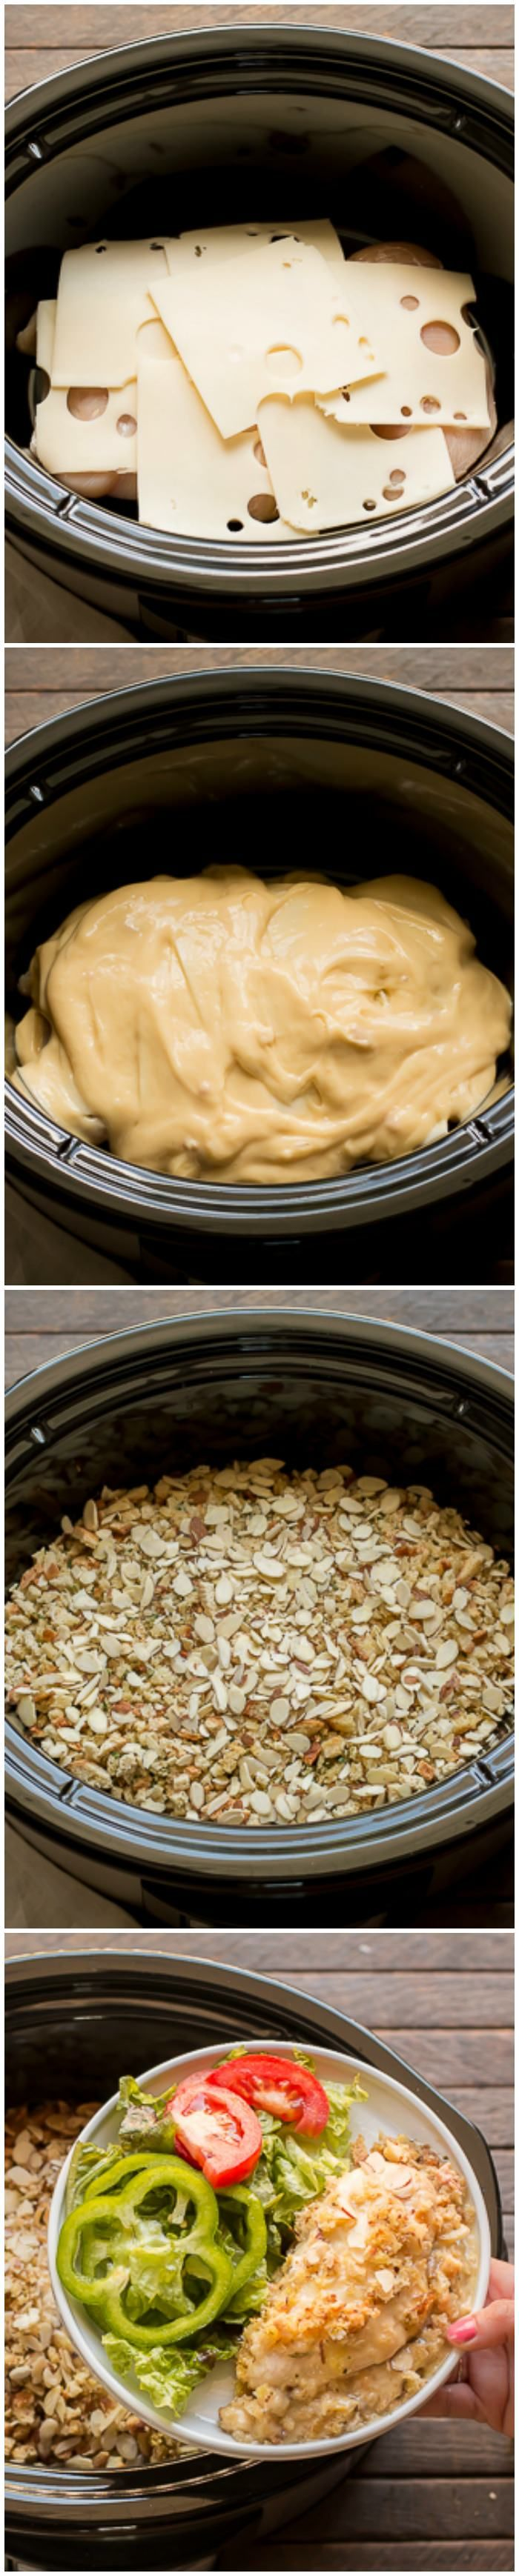 Slow Cooker Alpine Chicken